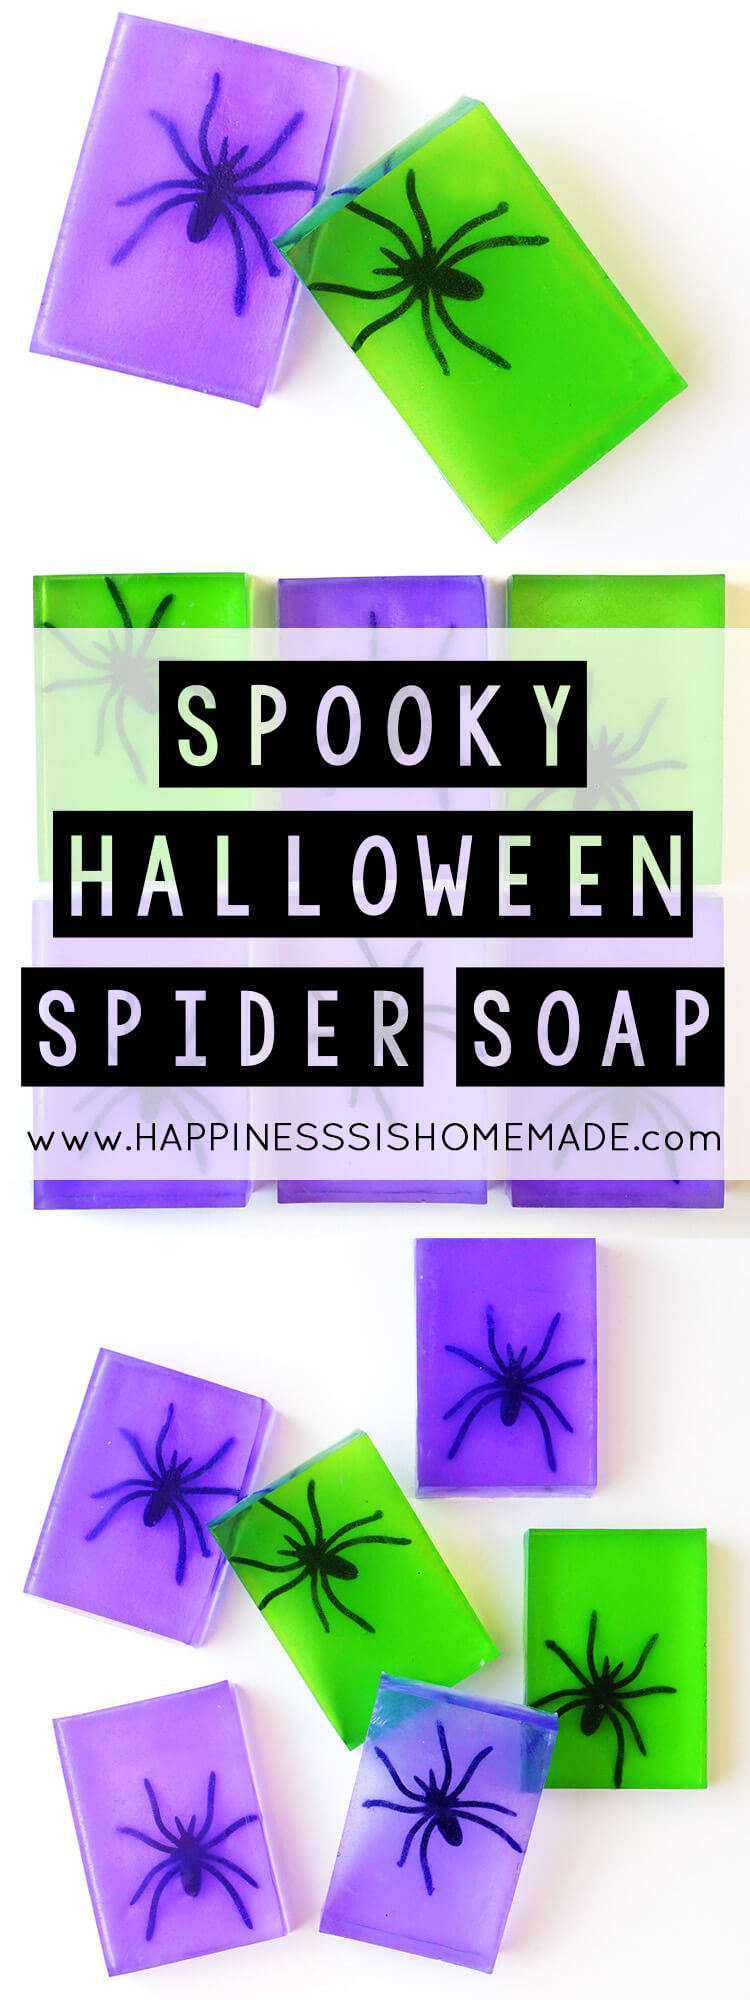 Spooky Spider Soap Halloween Craft - Happiness is Homemade